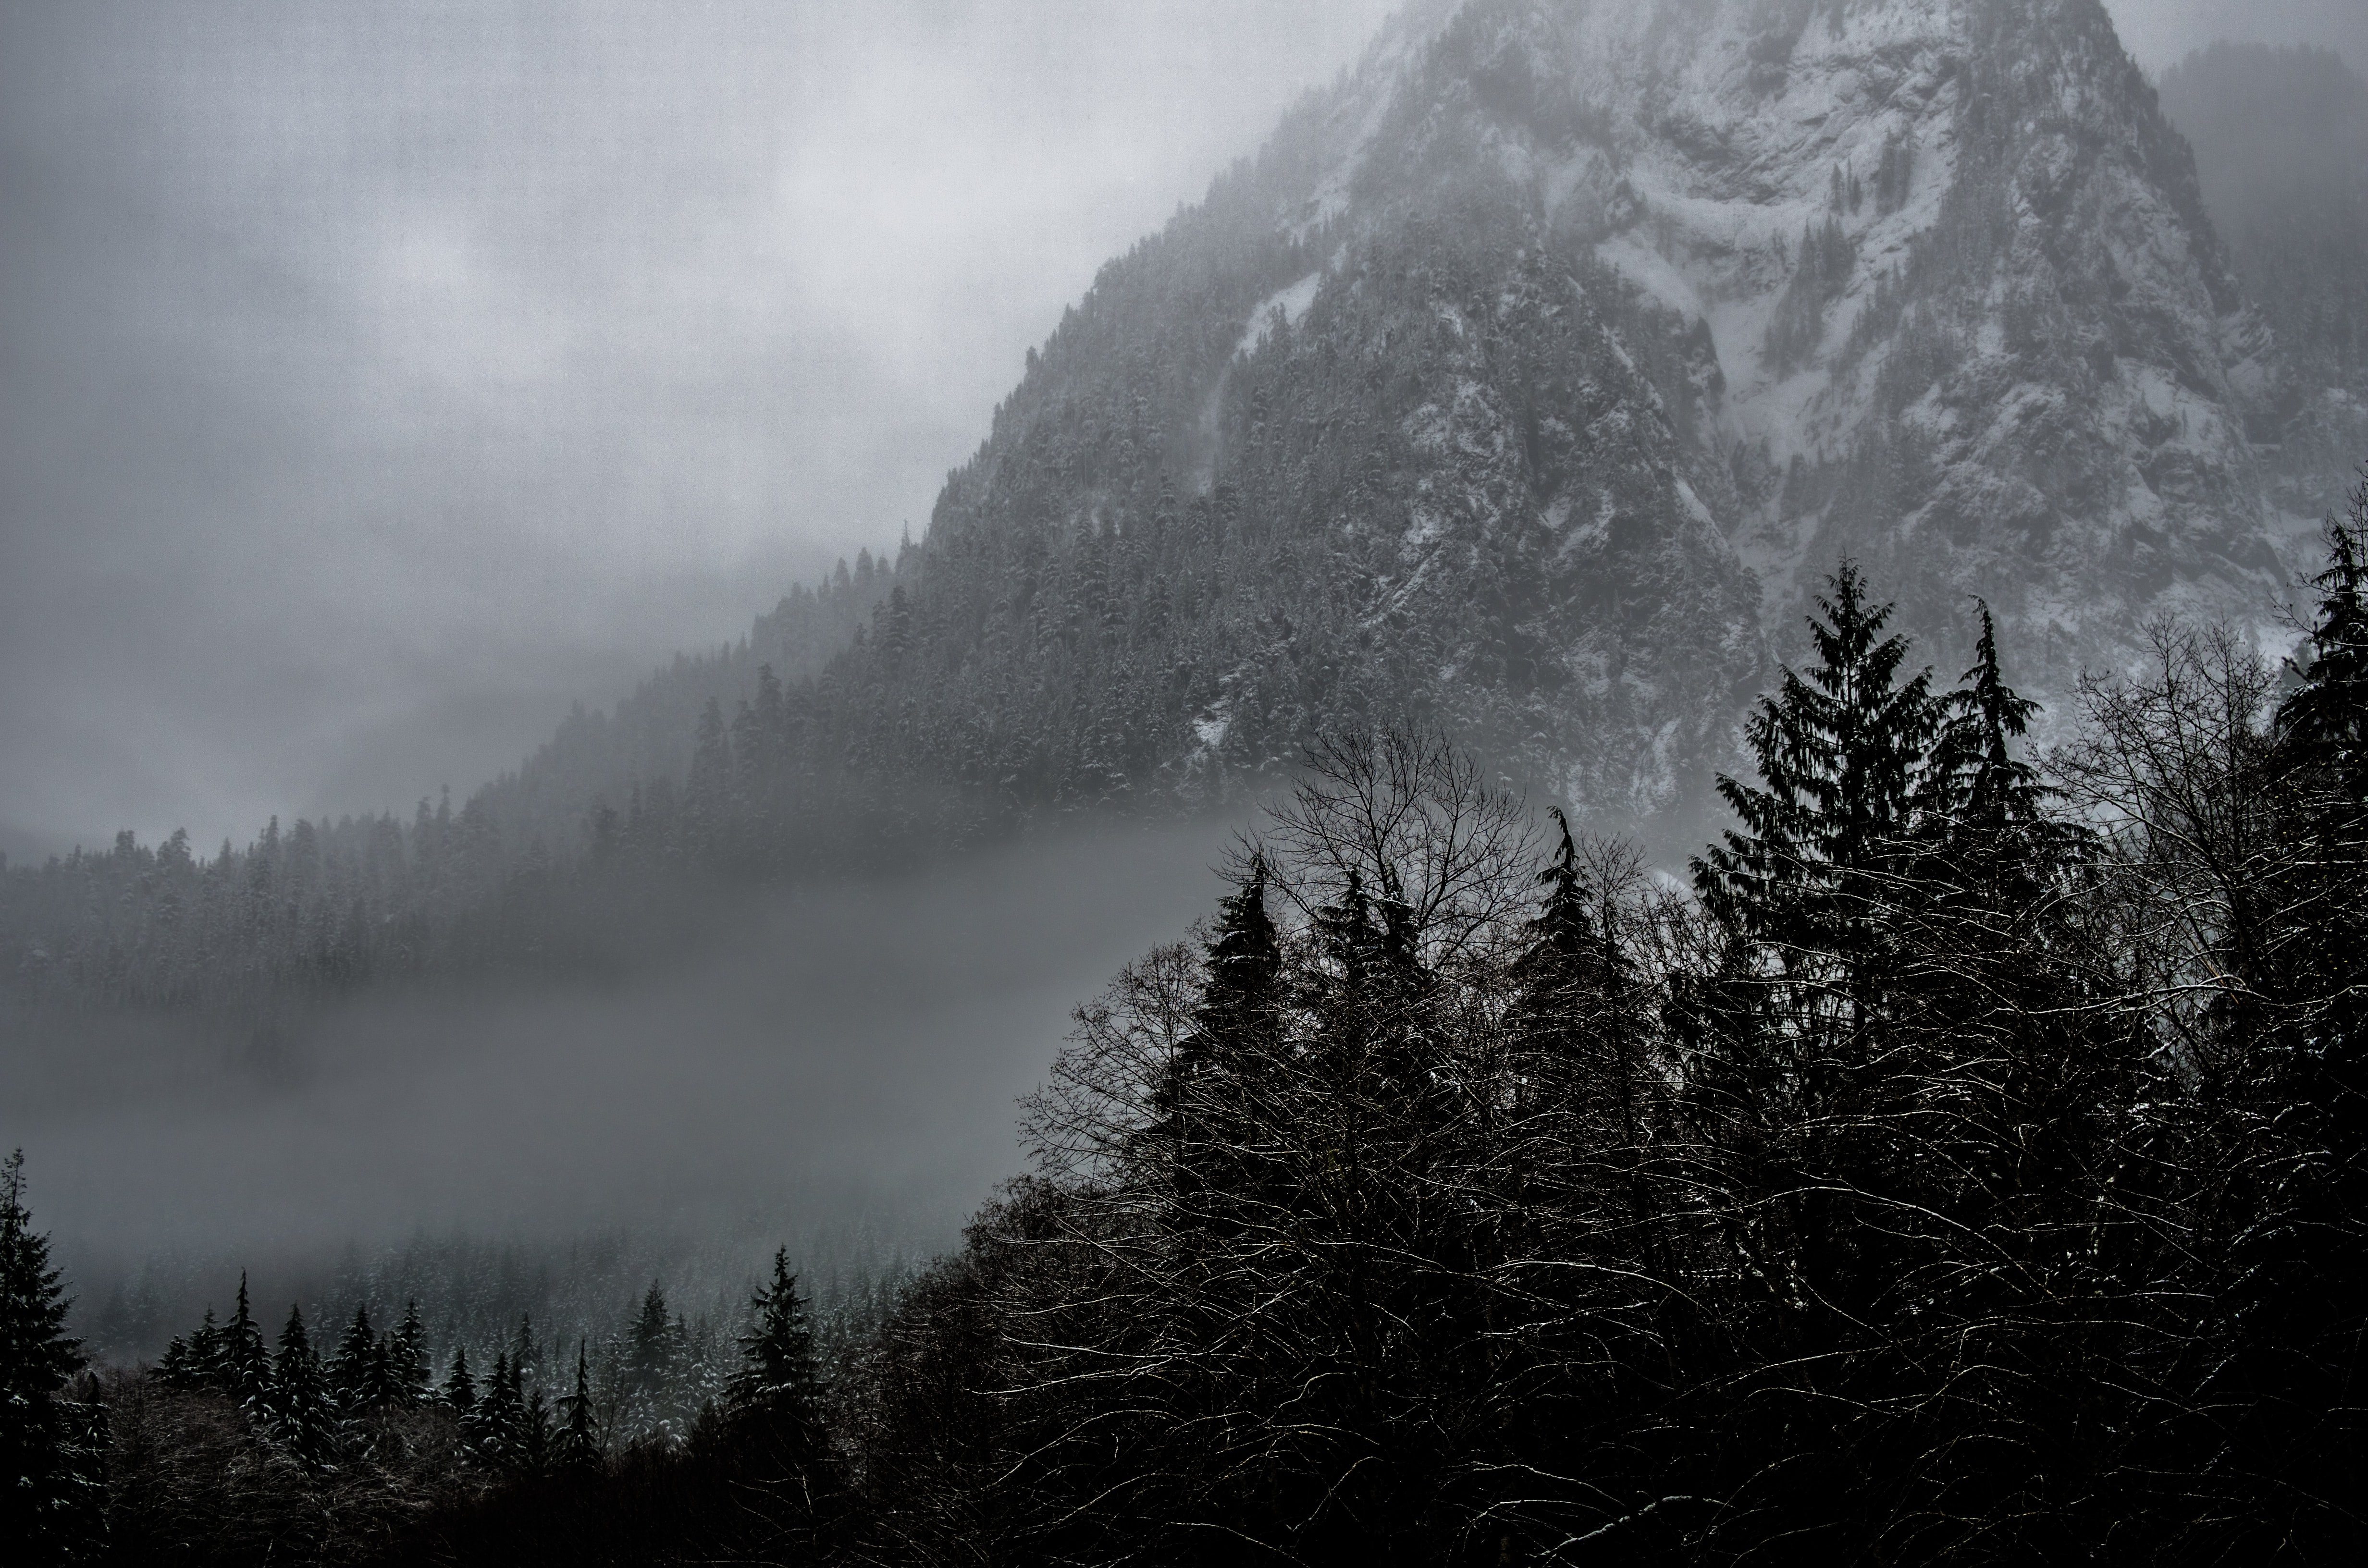 A cloudy scene with trees and a mountain covered with trees and snow in the background